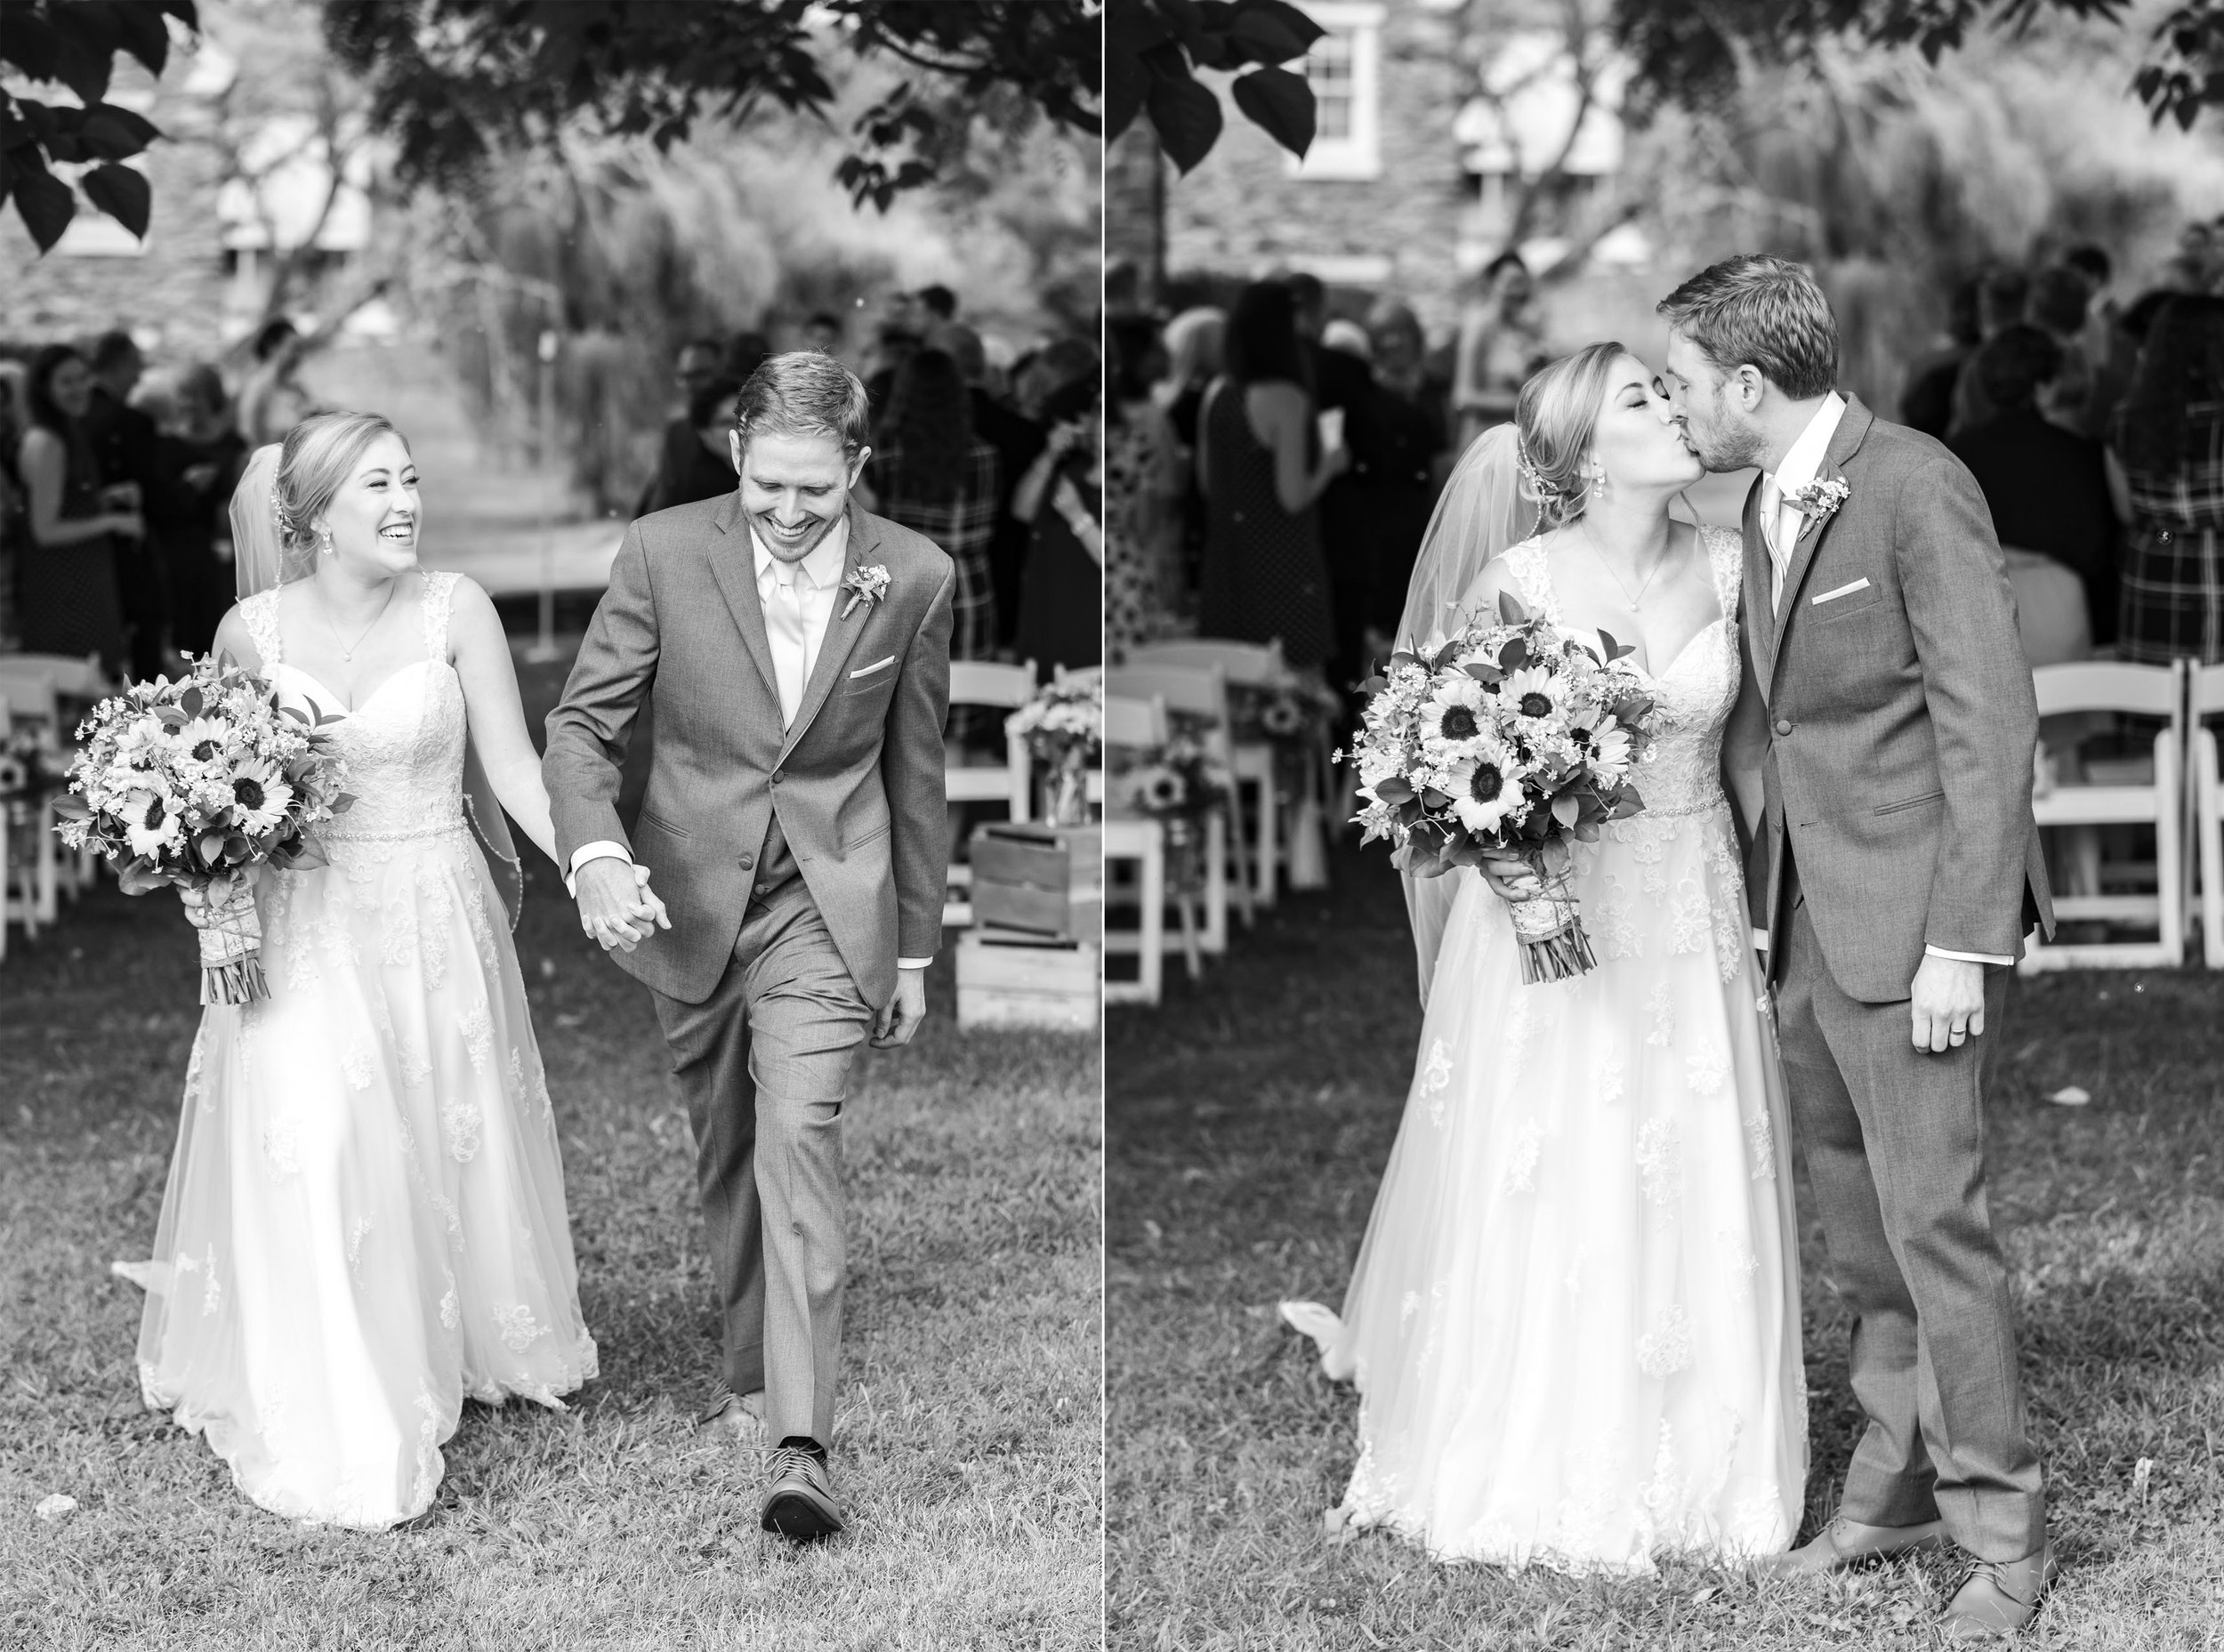 Black and white photos of bride and groom walking down the aisle with bubbles